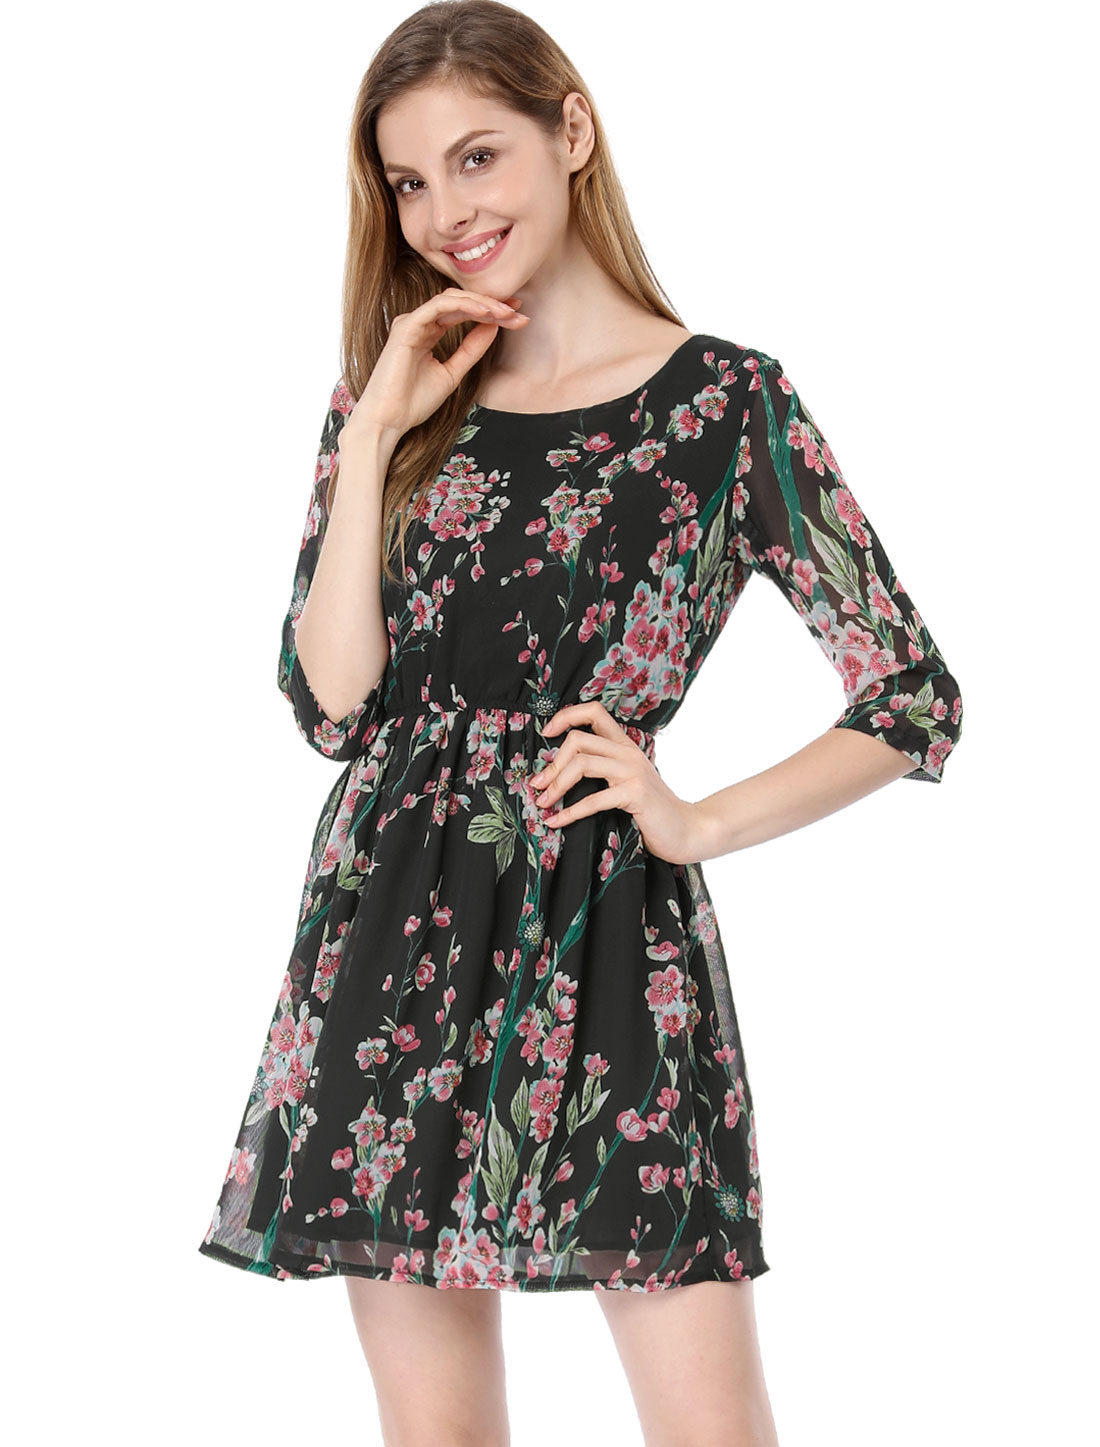 Lady 3/4 Sleeves Fully Lined Casual Floral Dress Black L